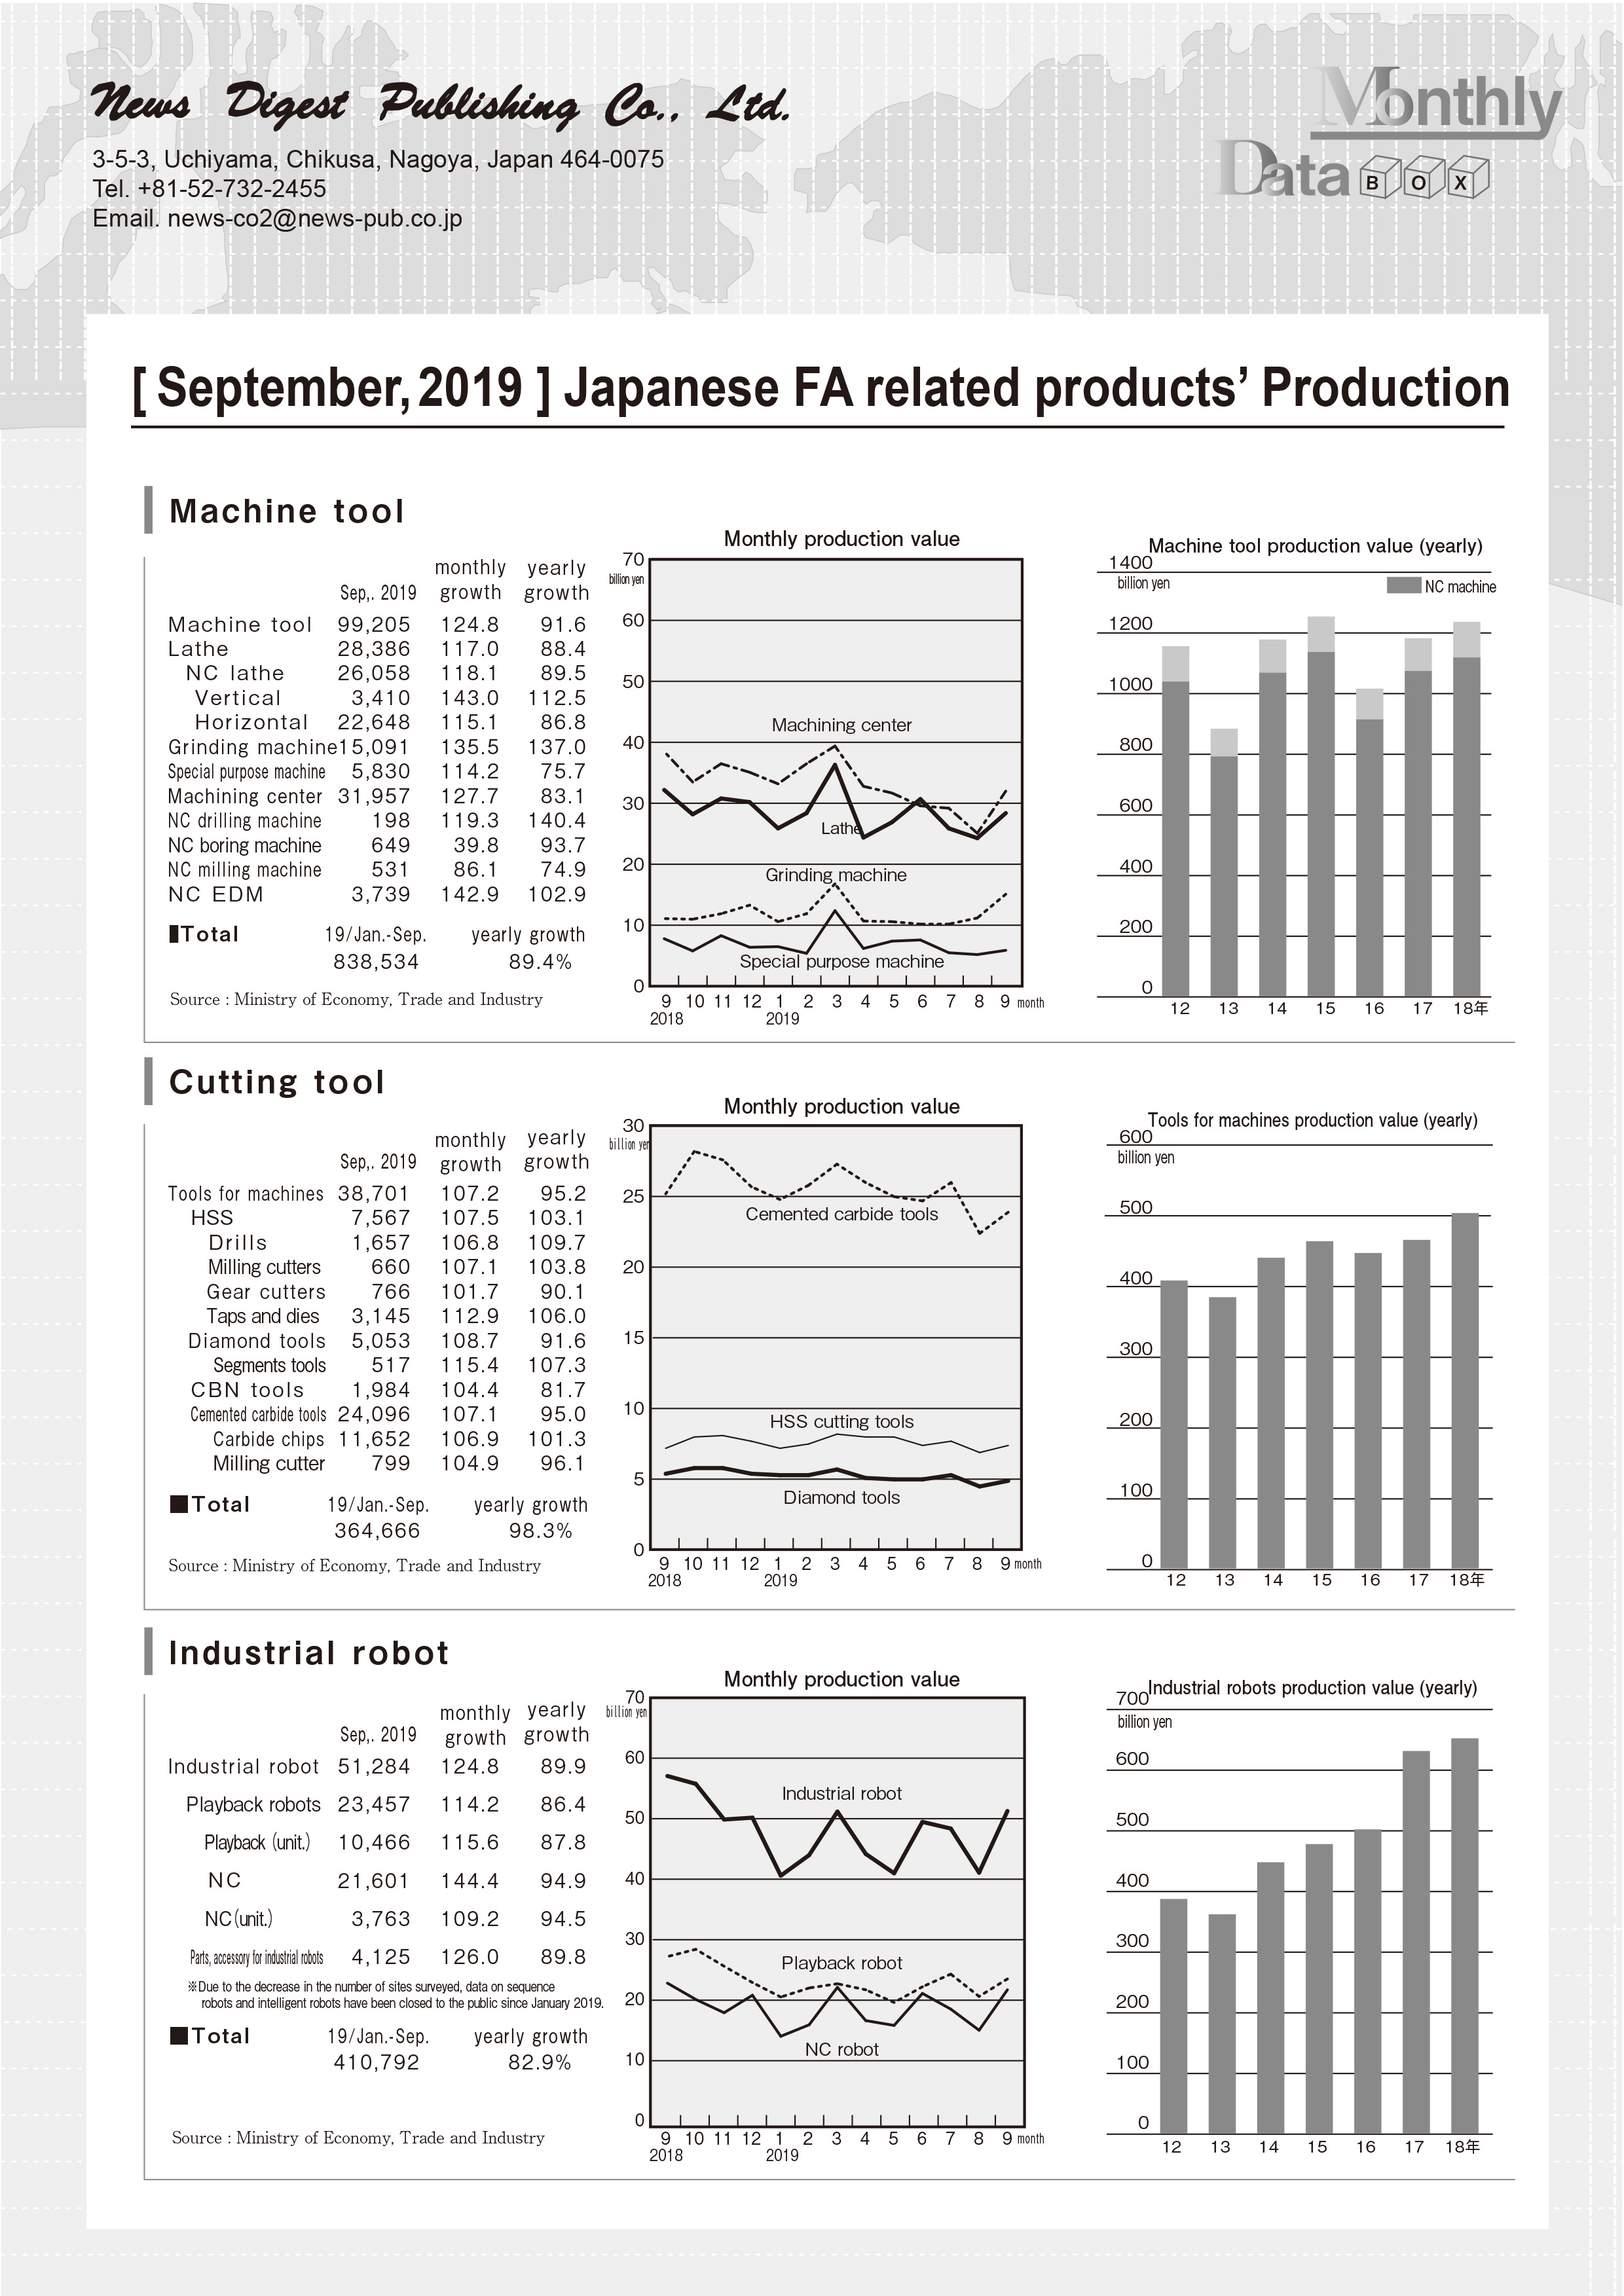 [September, 2019 ] Japanese FA related products' Production